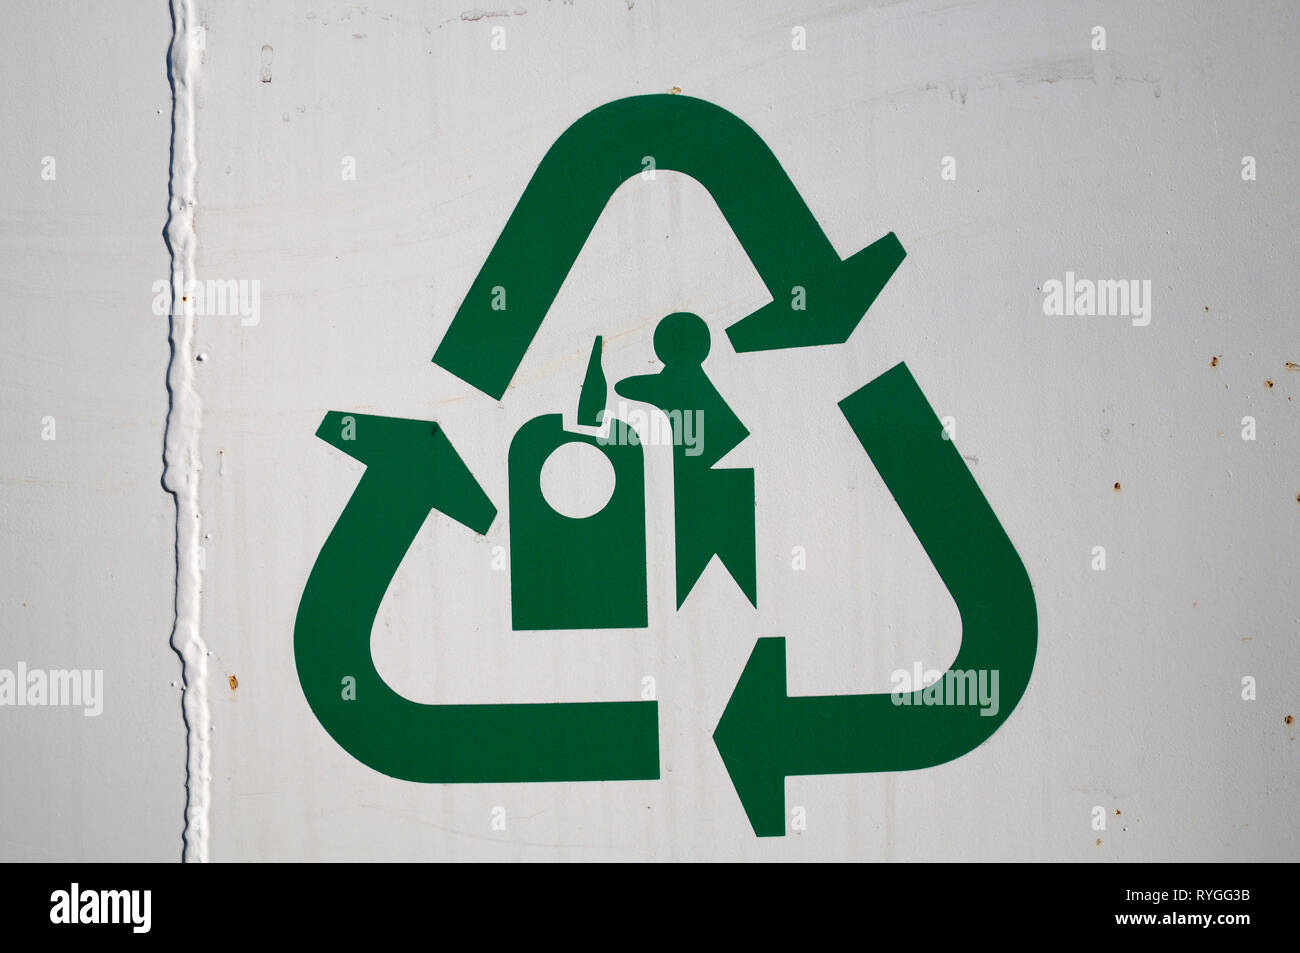 Glass recycling symbol with mobius loop - Stock Image